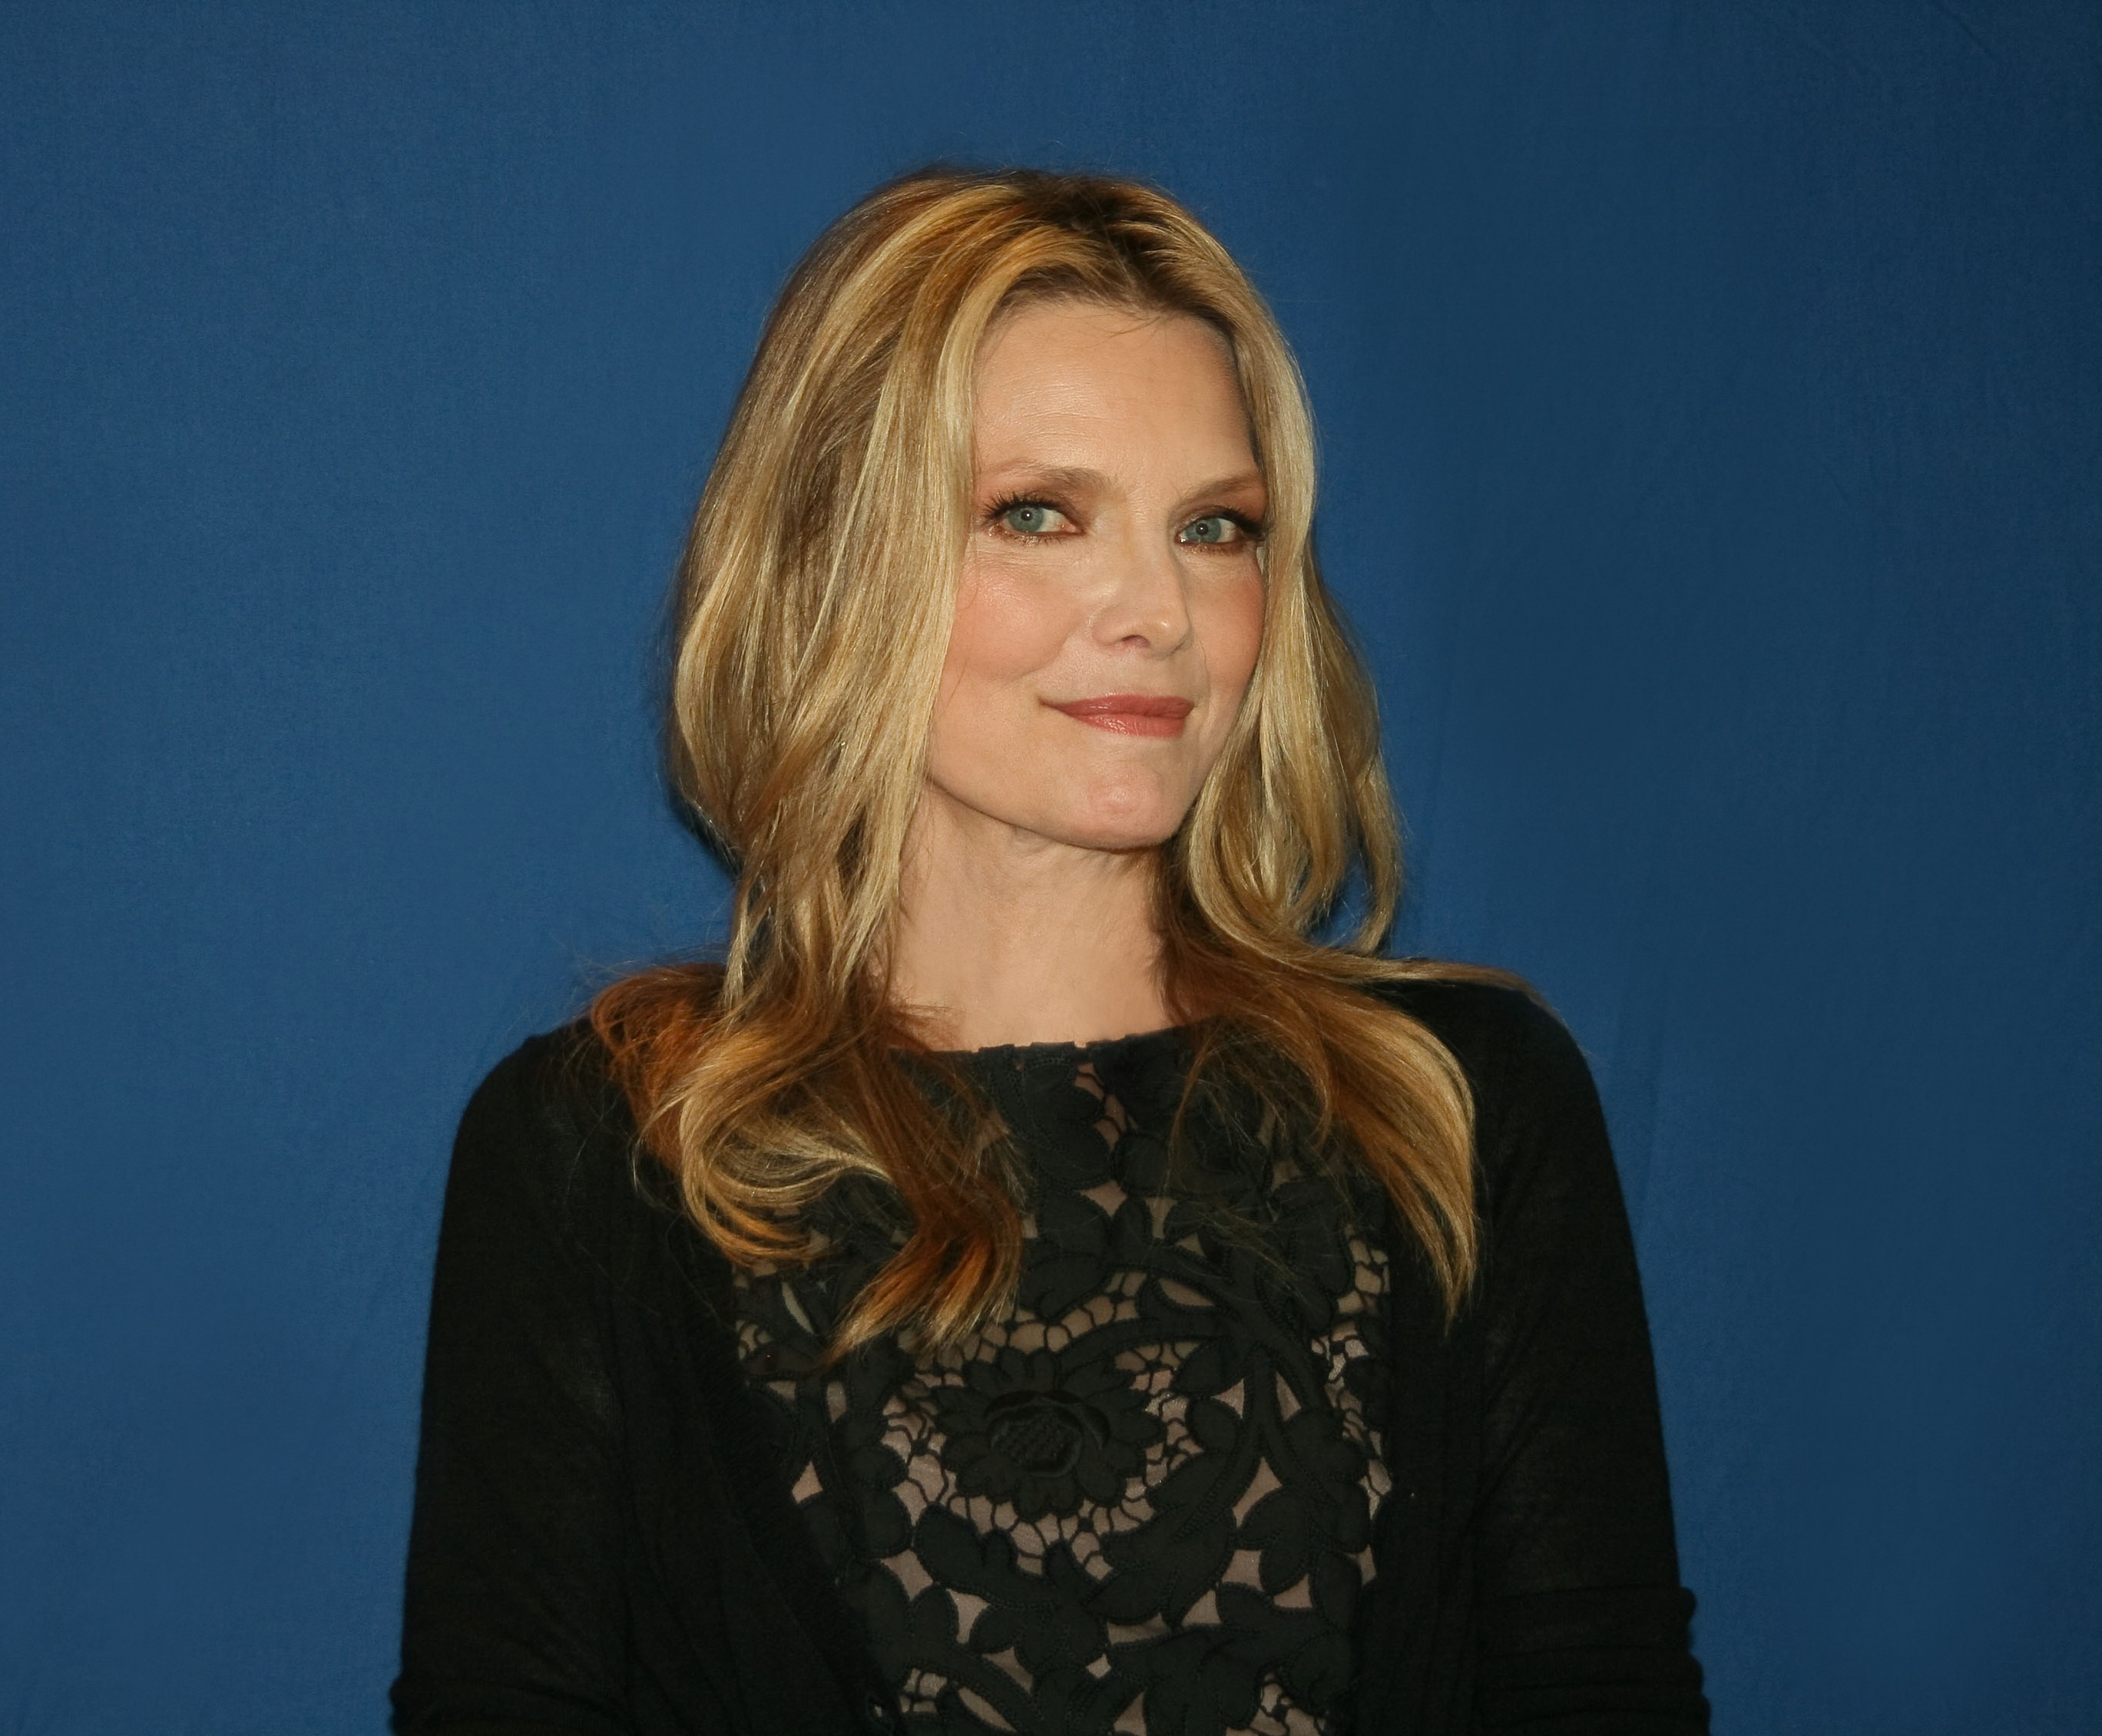 Michelle Pfeiffer: Now I can walk around naked! That's kind of nice